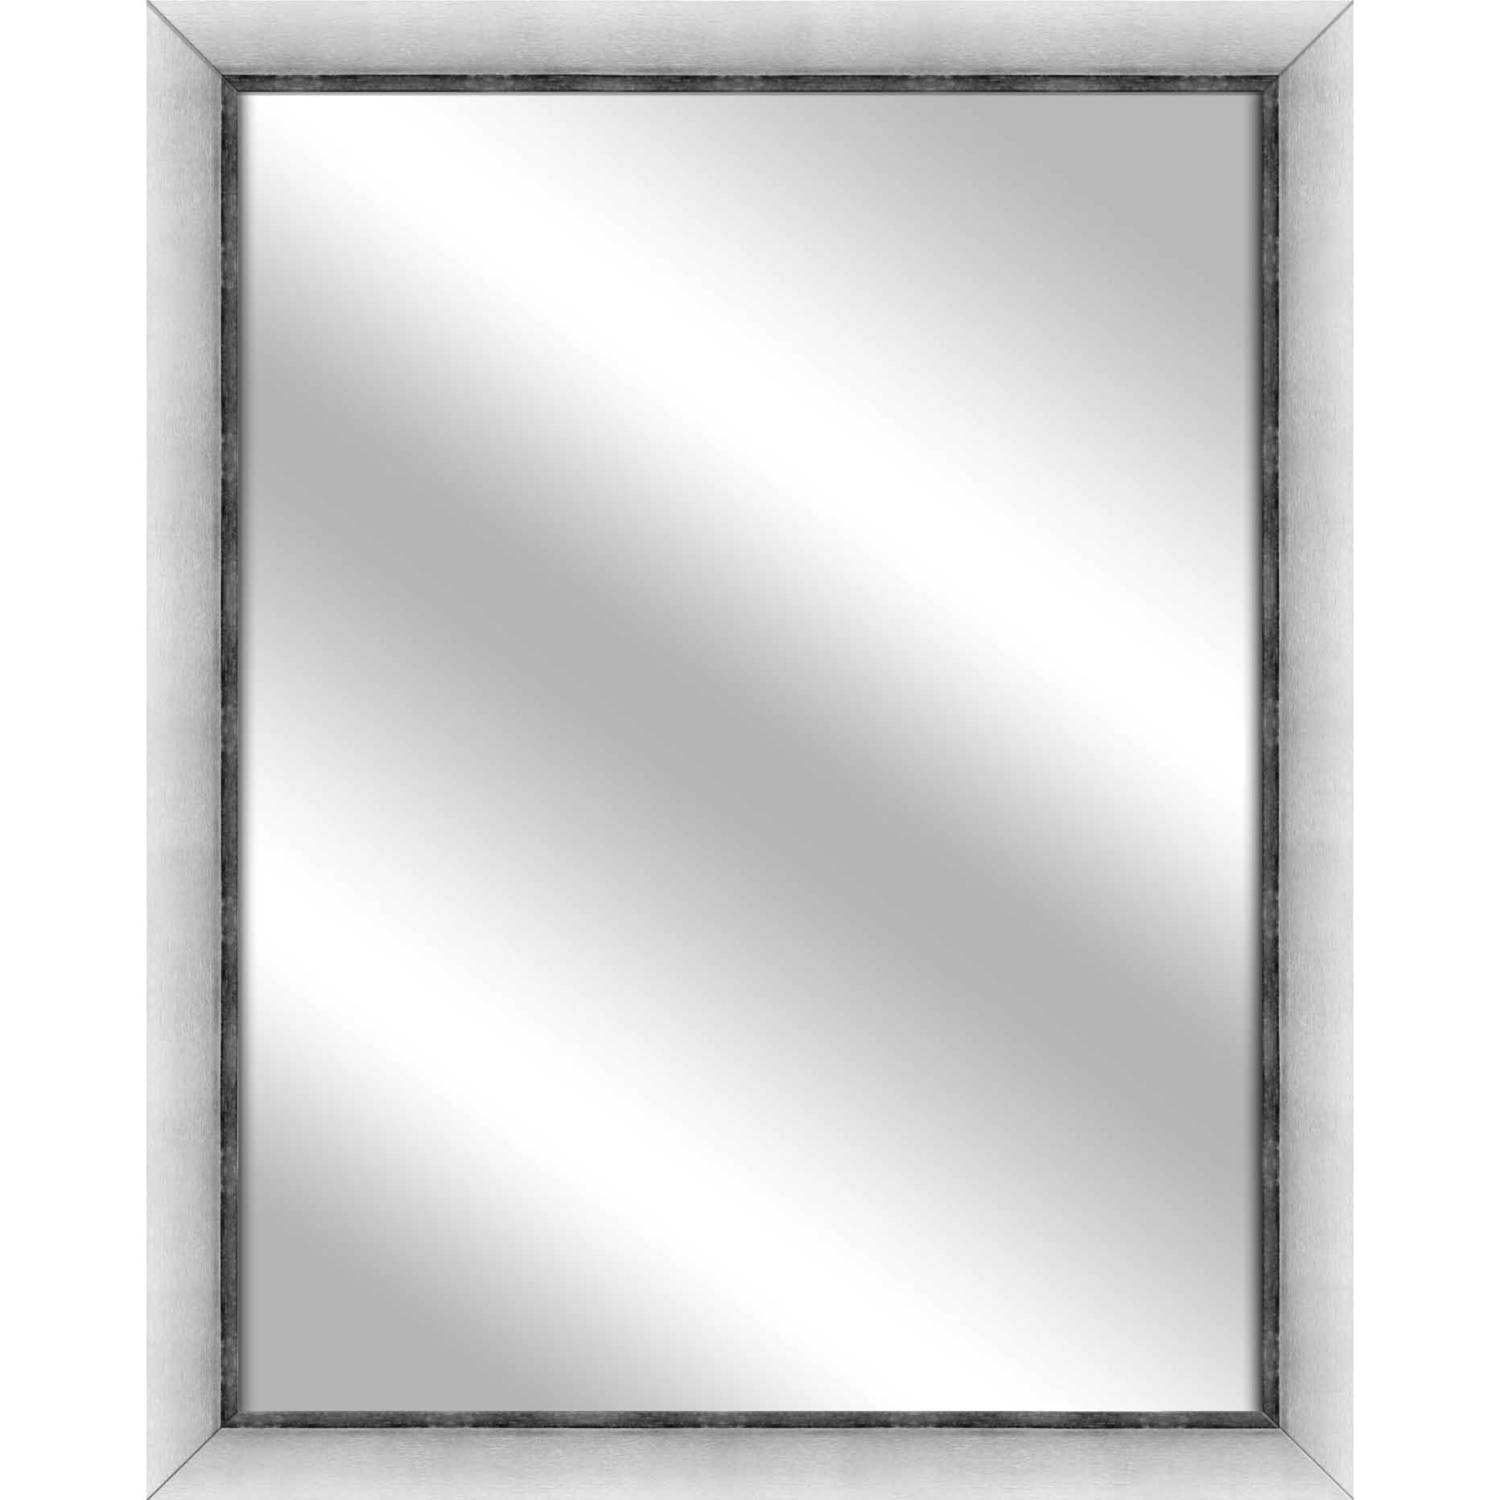 Vanity Mirror, Stainless Silver, 24.75x30.75 by PTM Images